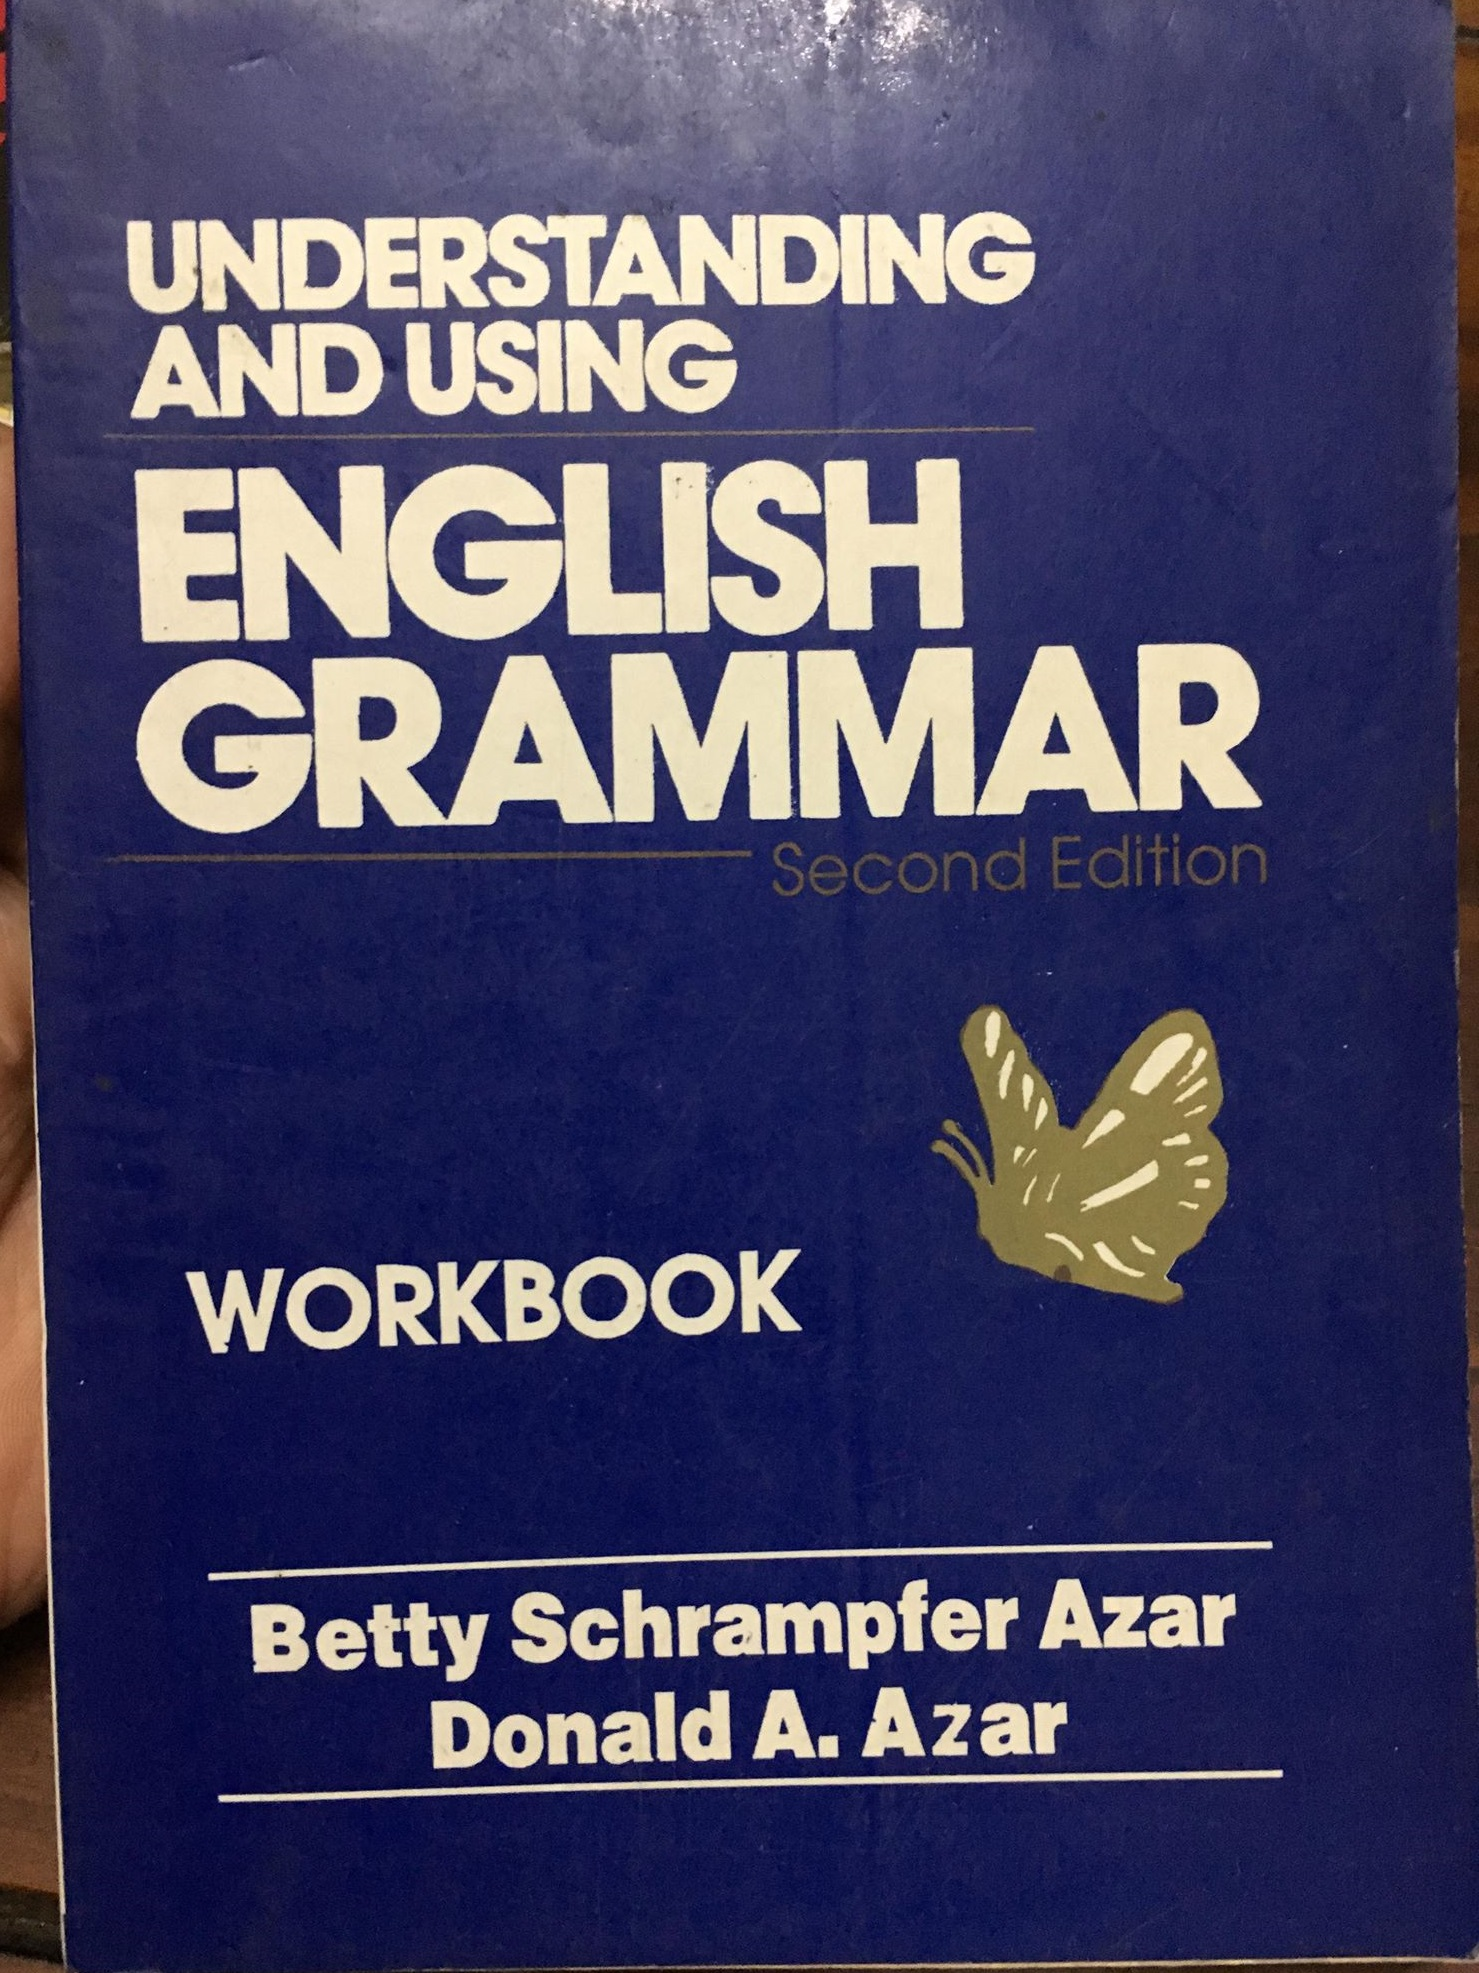 Understanding and using English grammar workbook by Betty Schrampfer Azar, Donald A. Azar